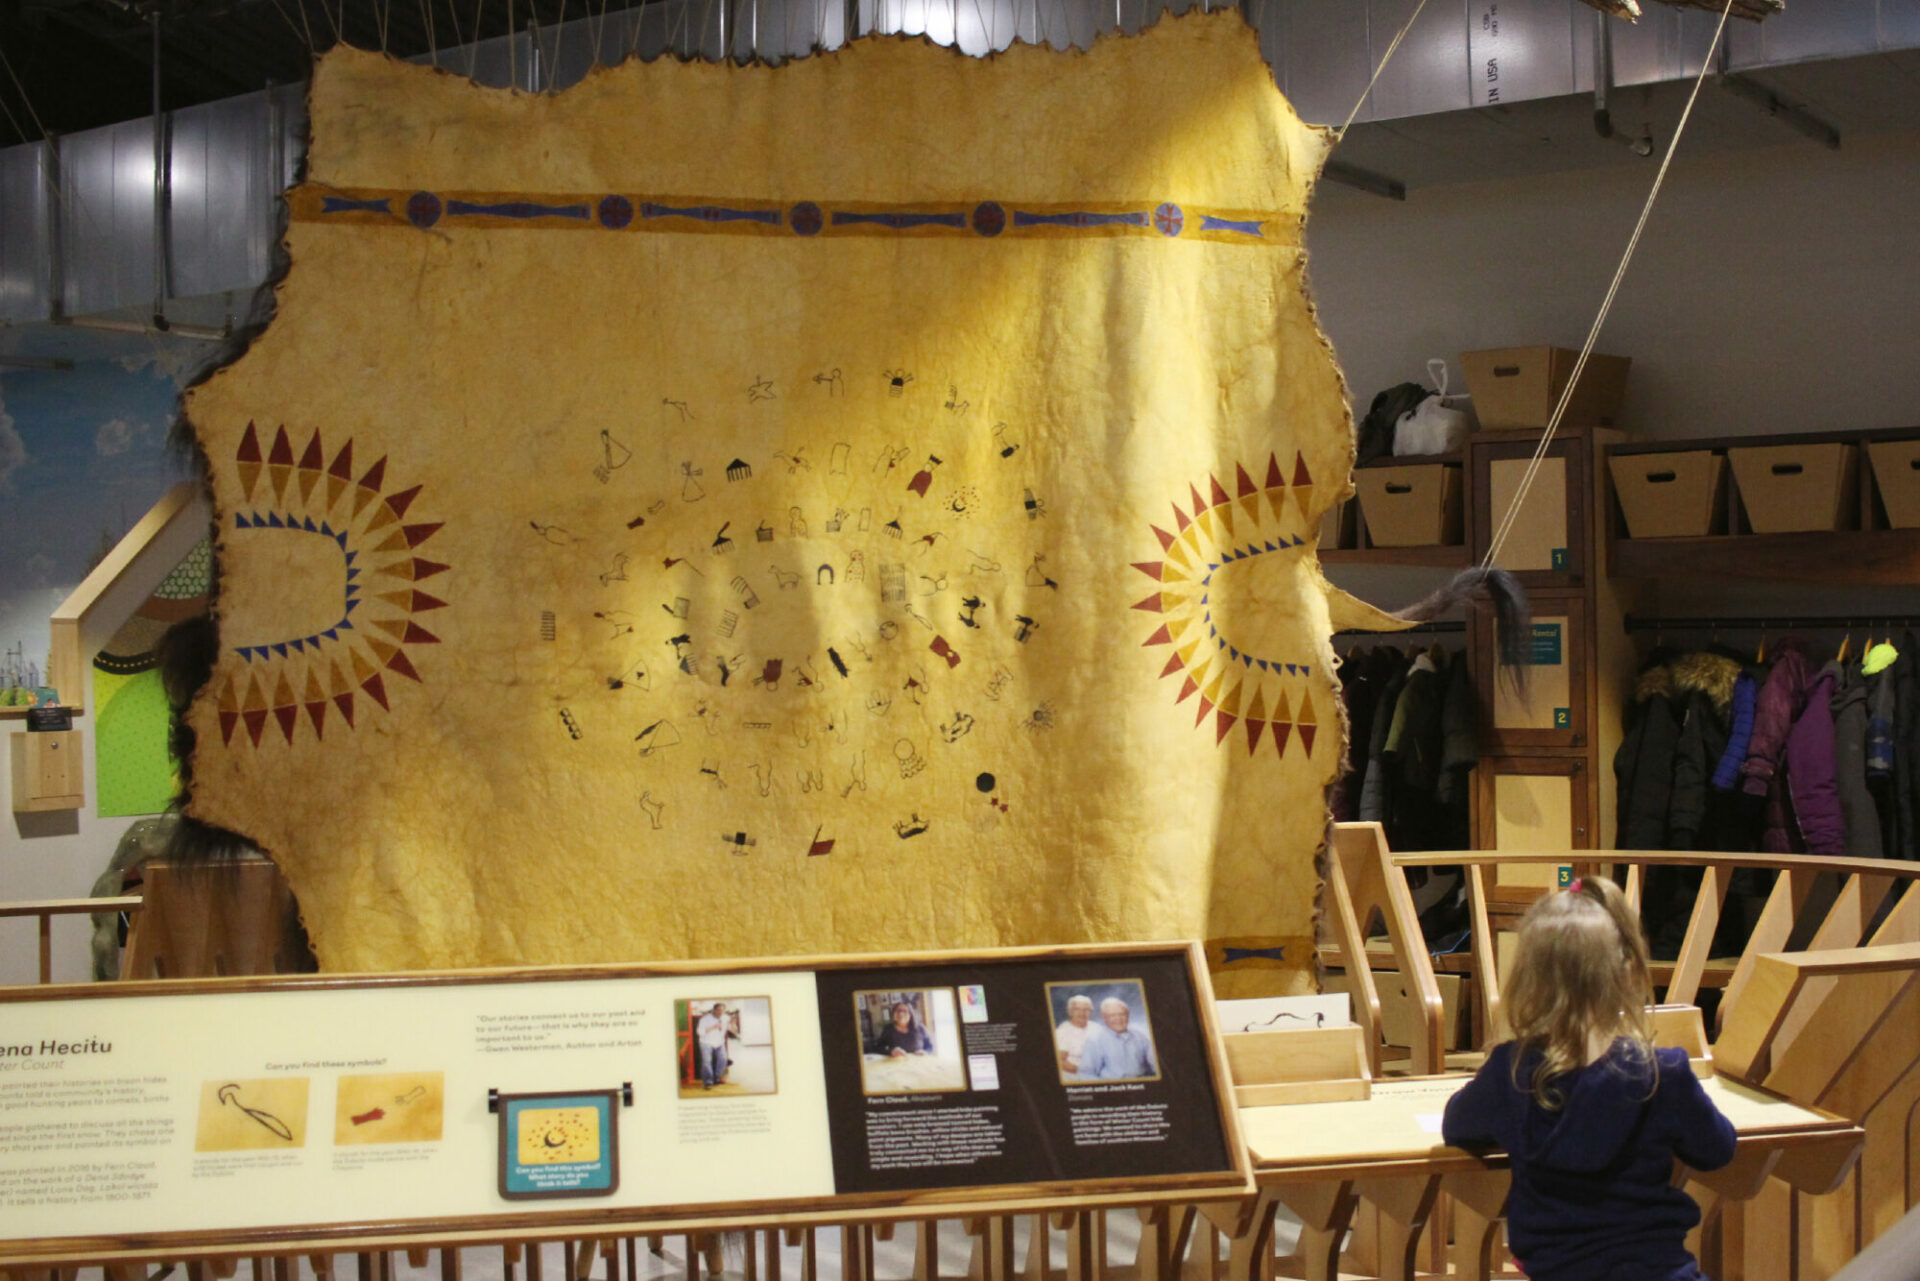 Winter Count Dakota Exhibit at the Childrens Museum of Southern Minnesota